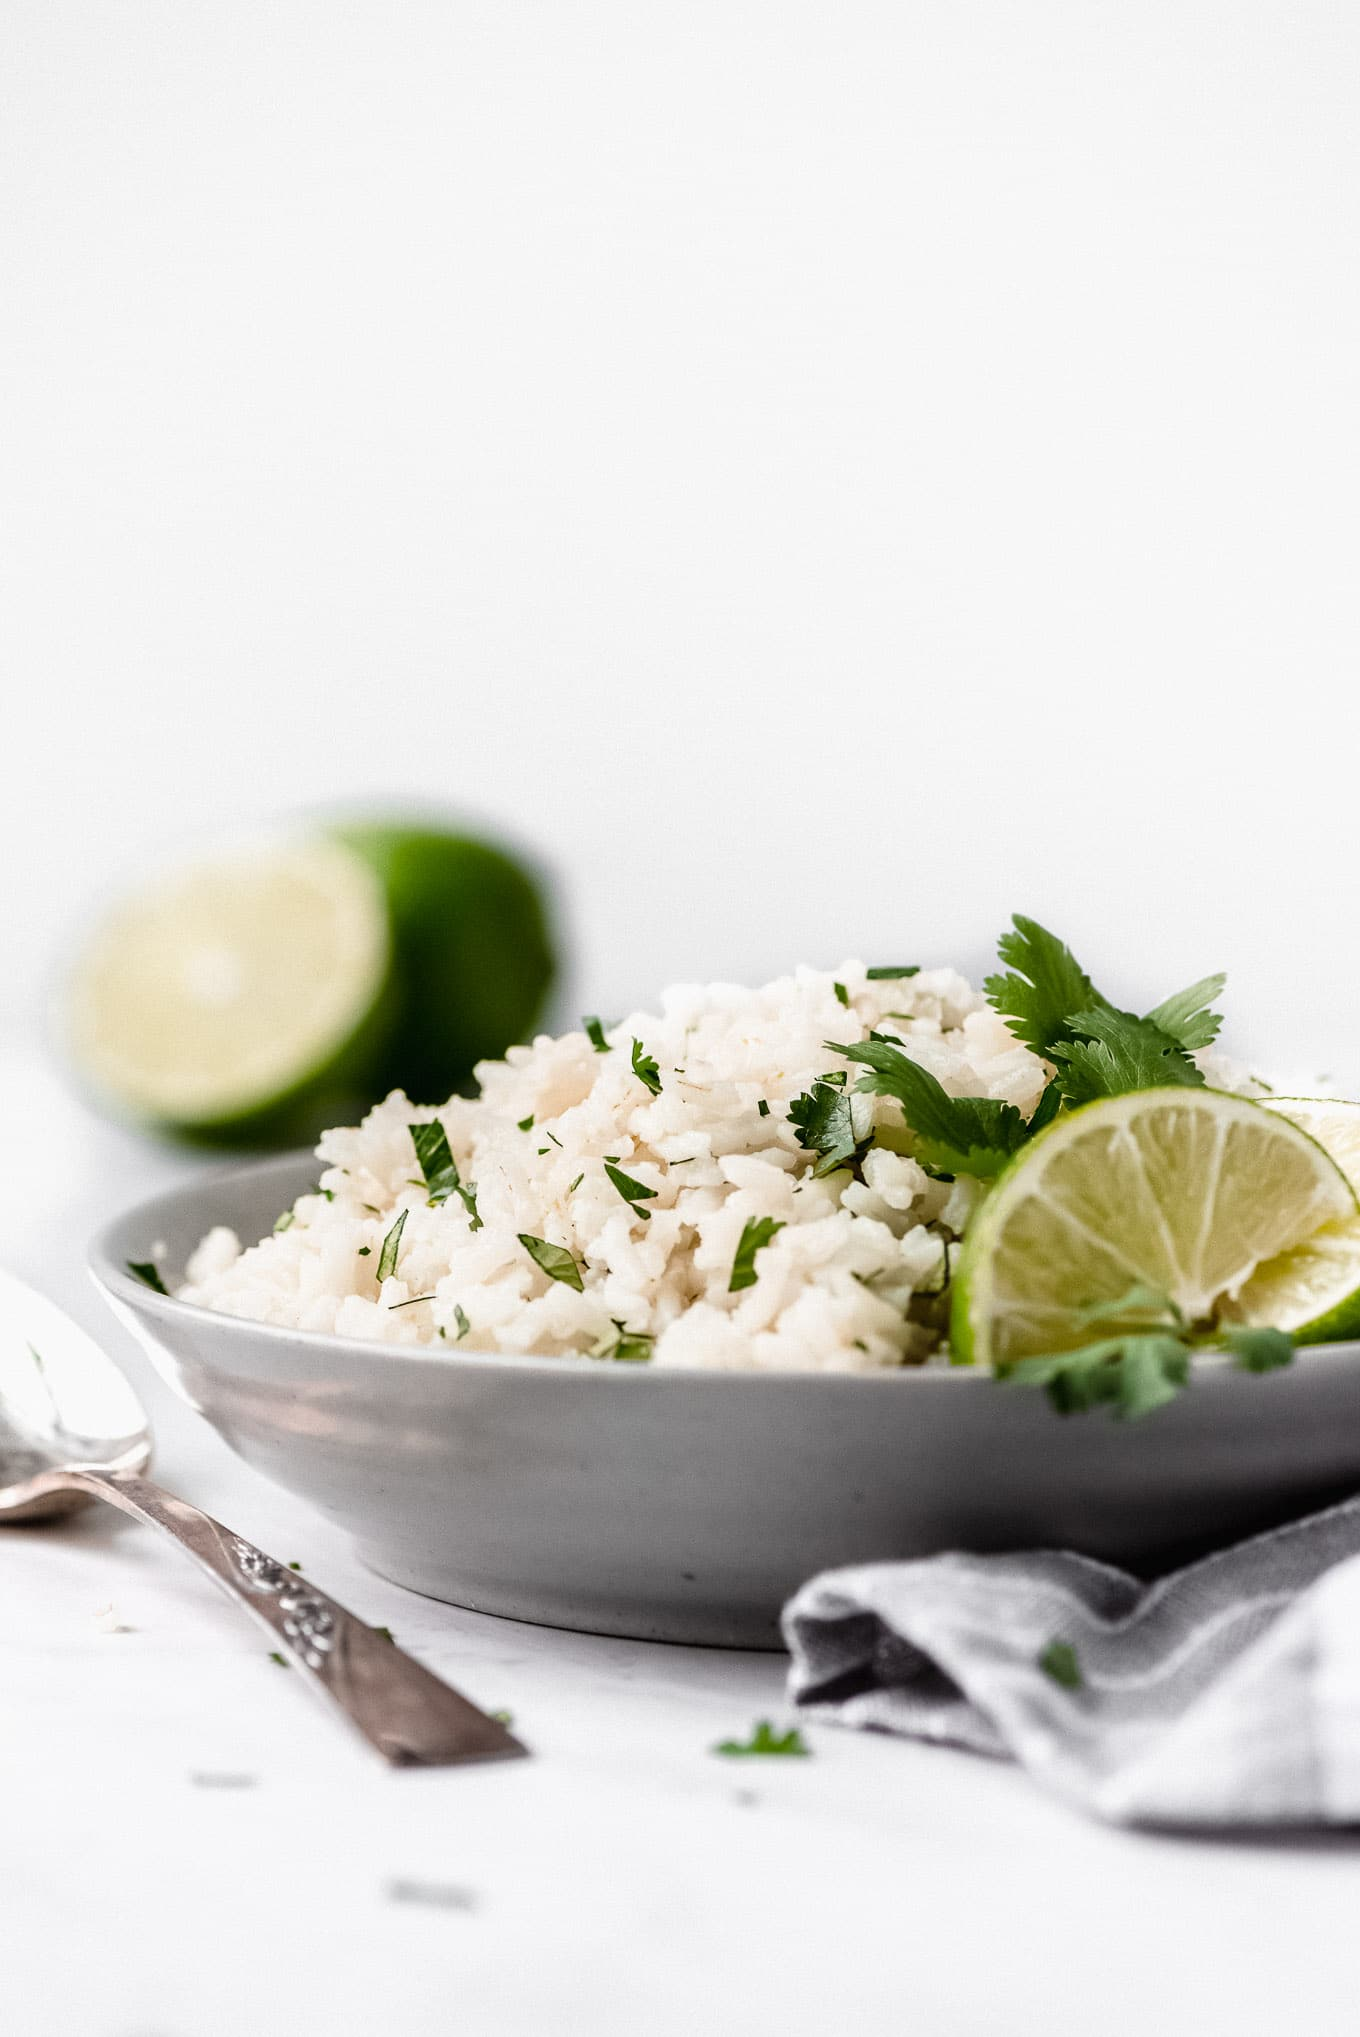 Side view of Cilantro Lime Rice piled high in a bowl and garnished with lime edges and cilantro leaves.